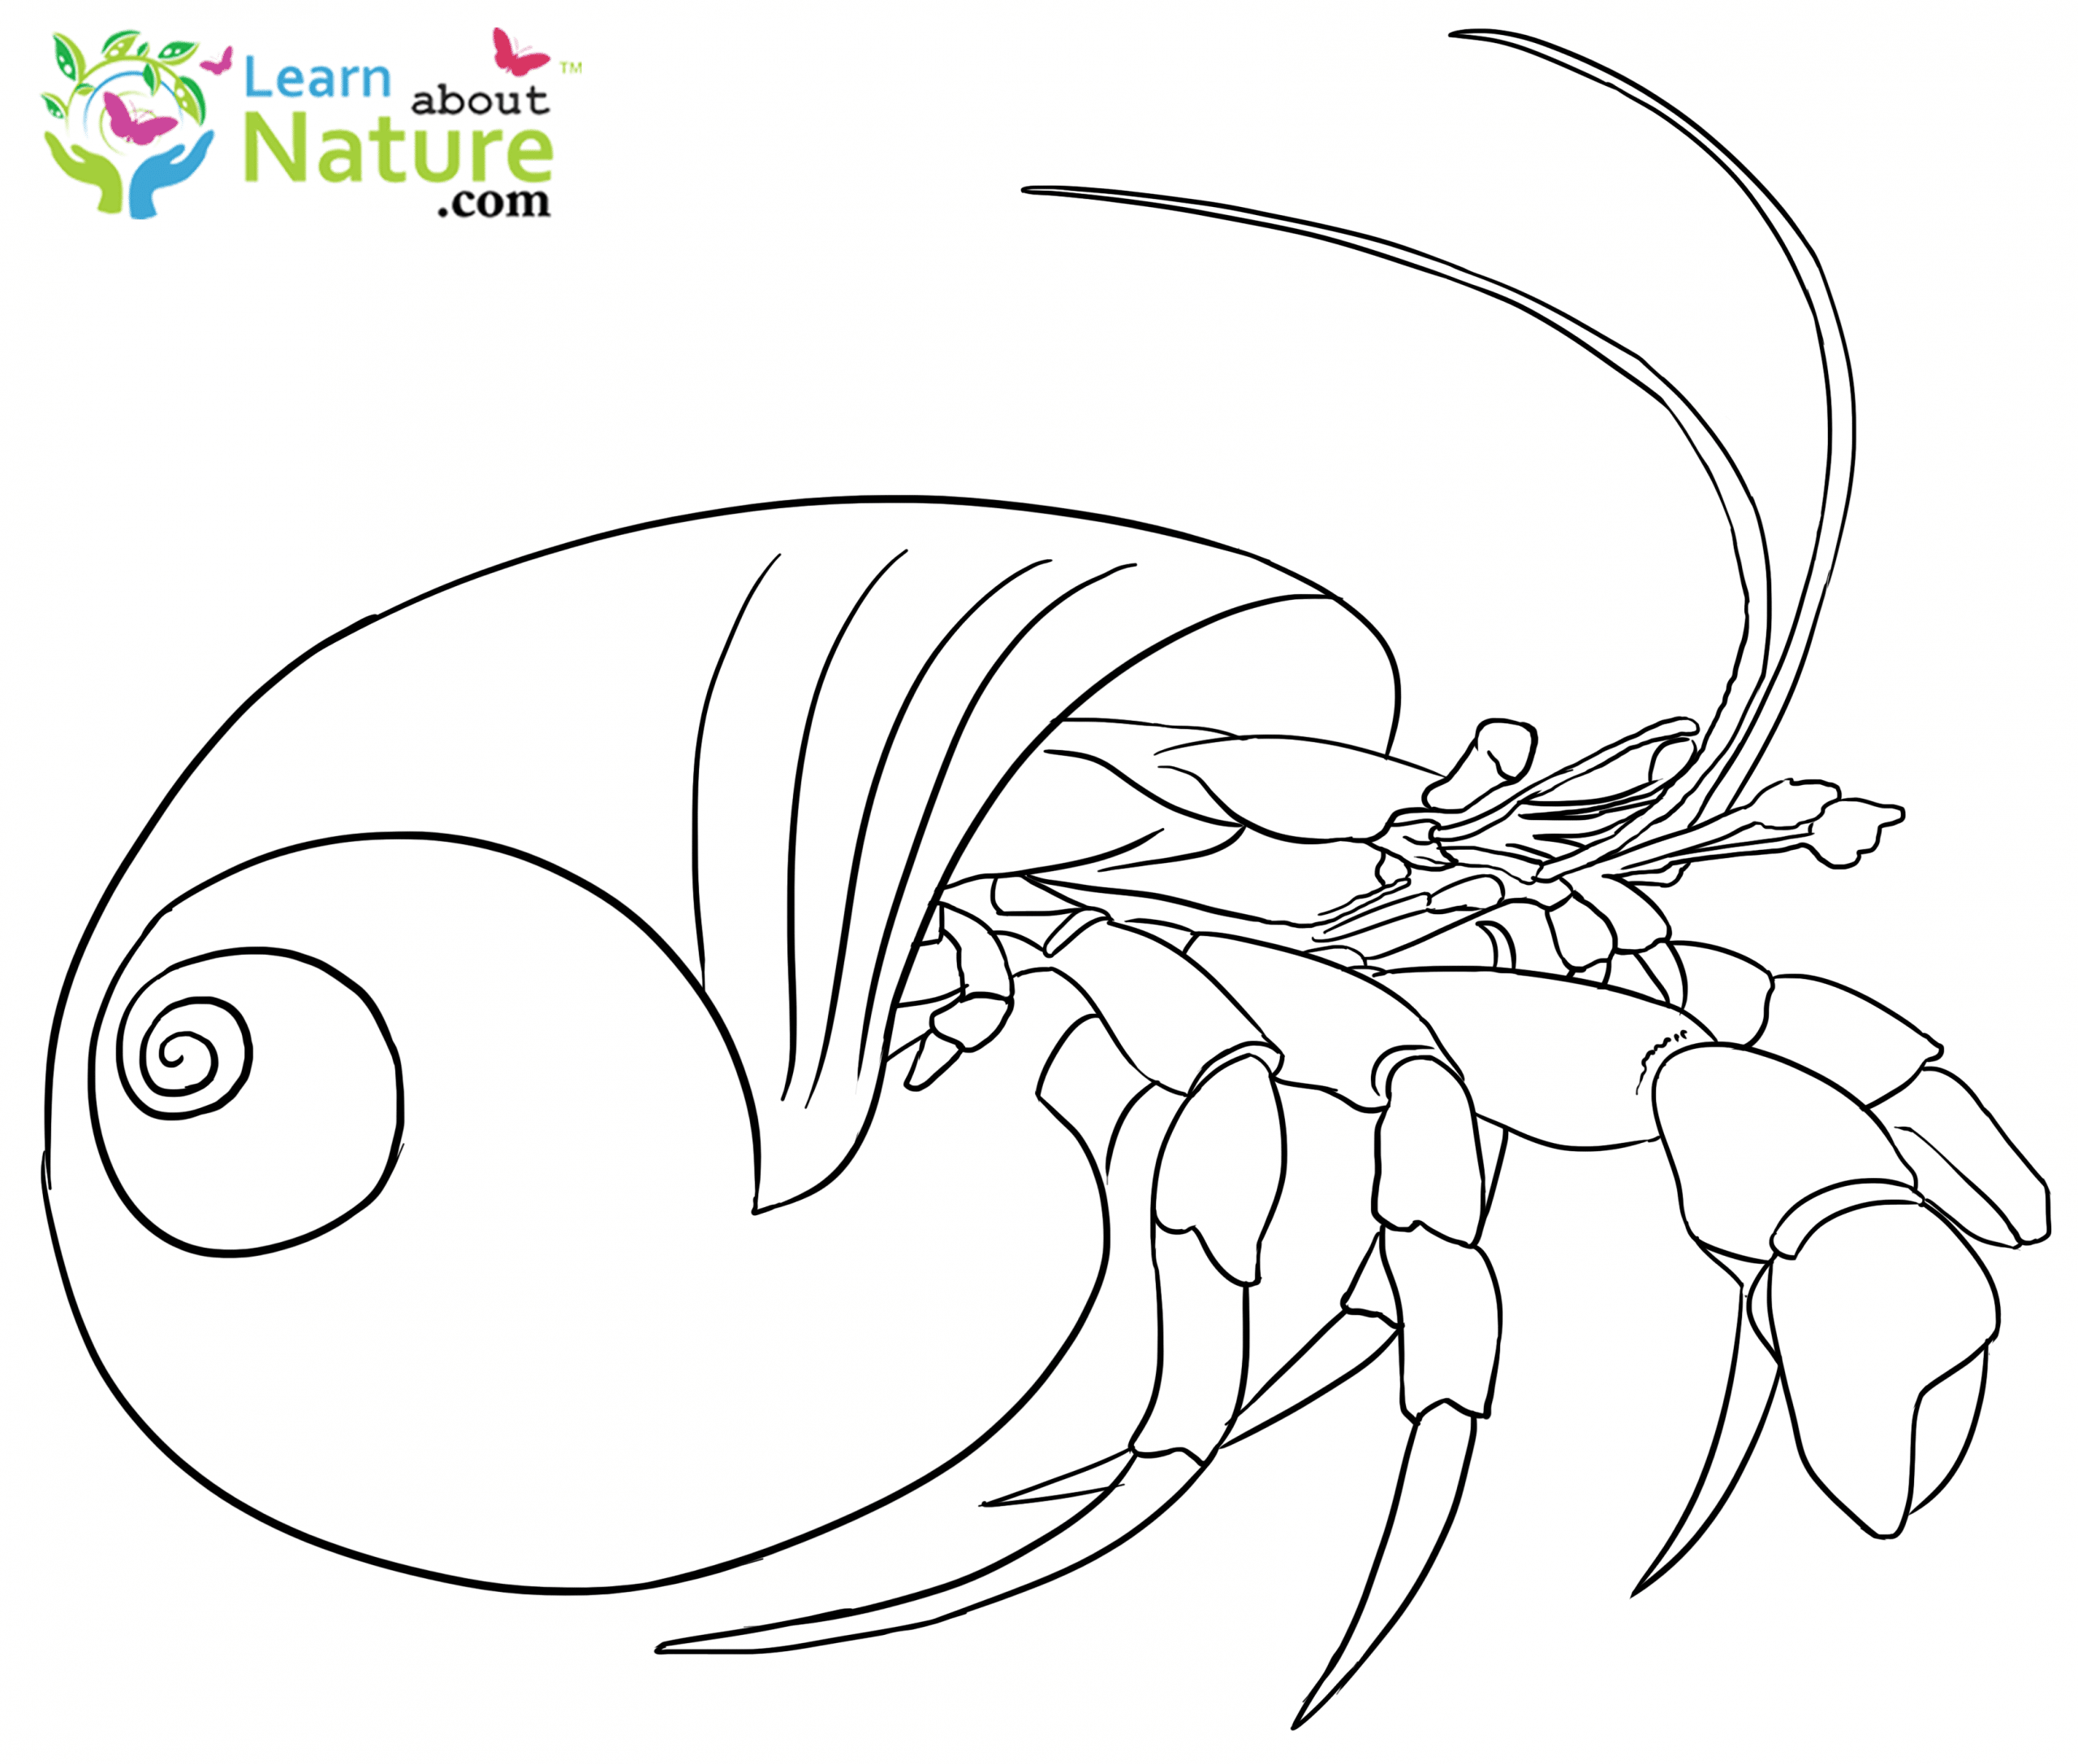 - Hermit-crab-coloring-page-8 - Learn About Nature